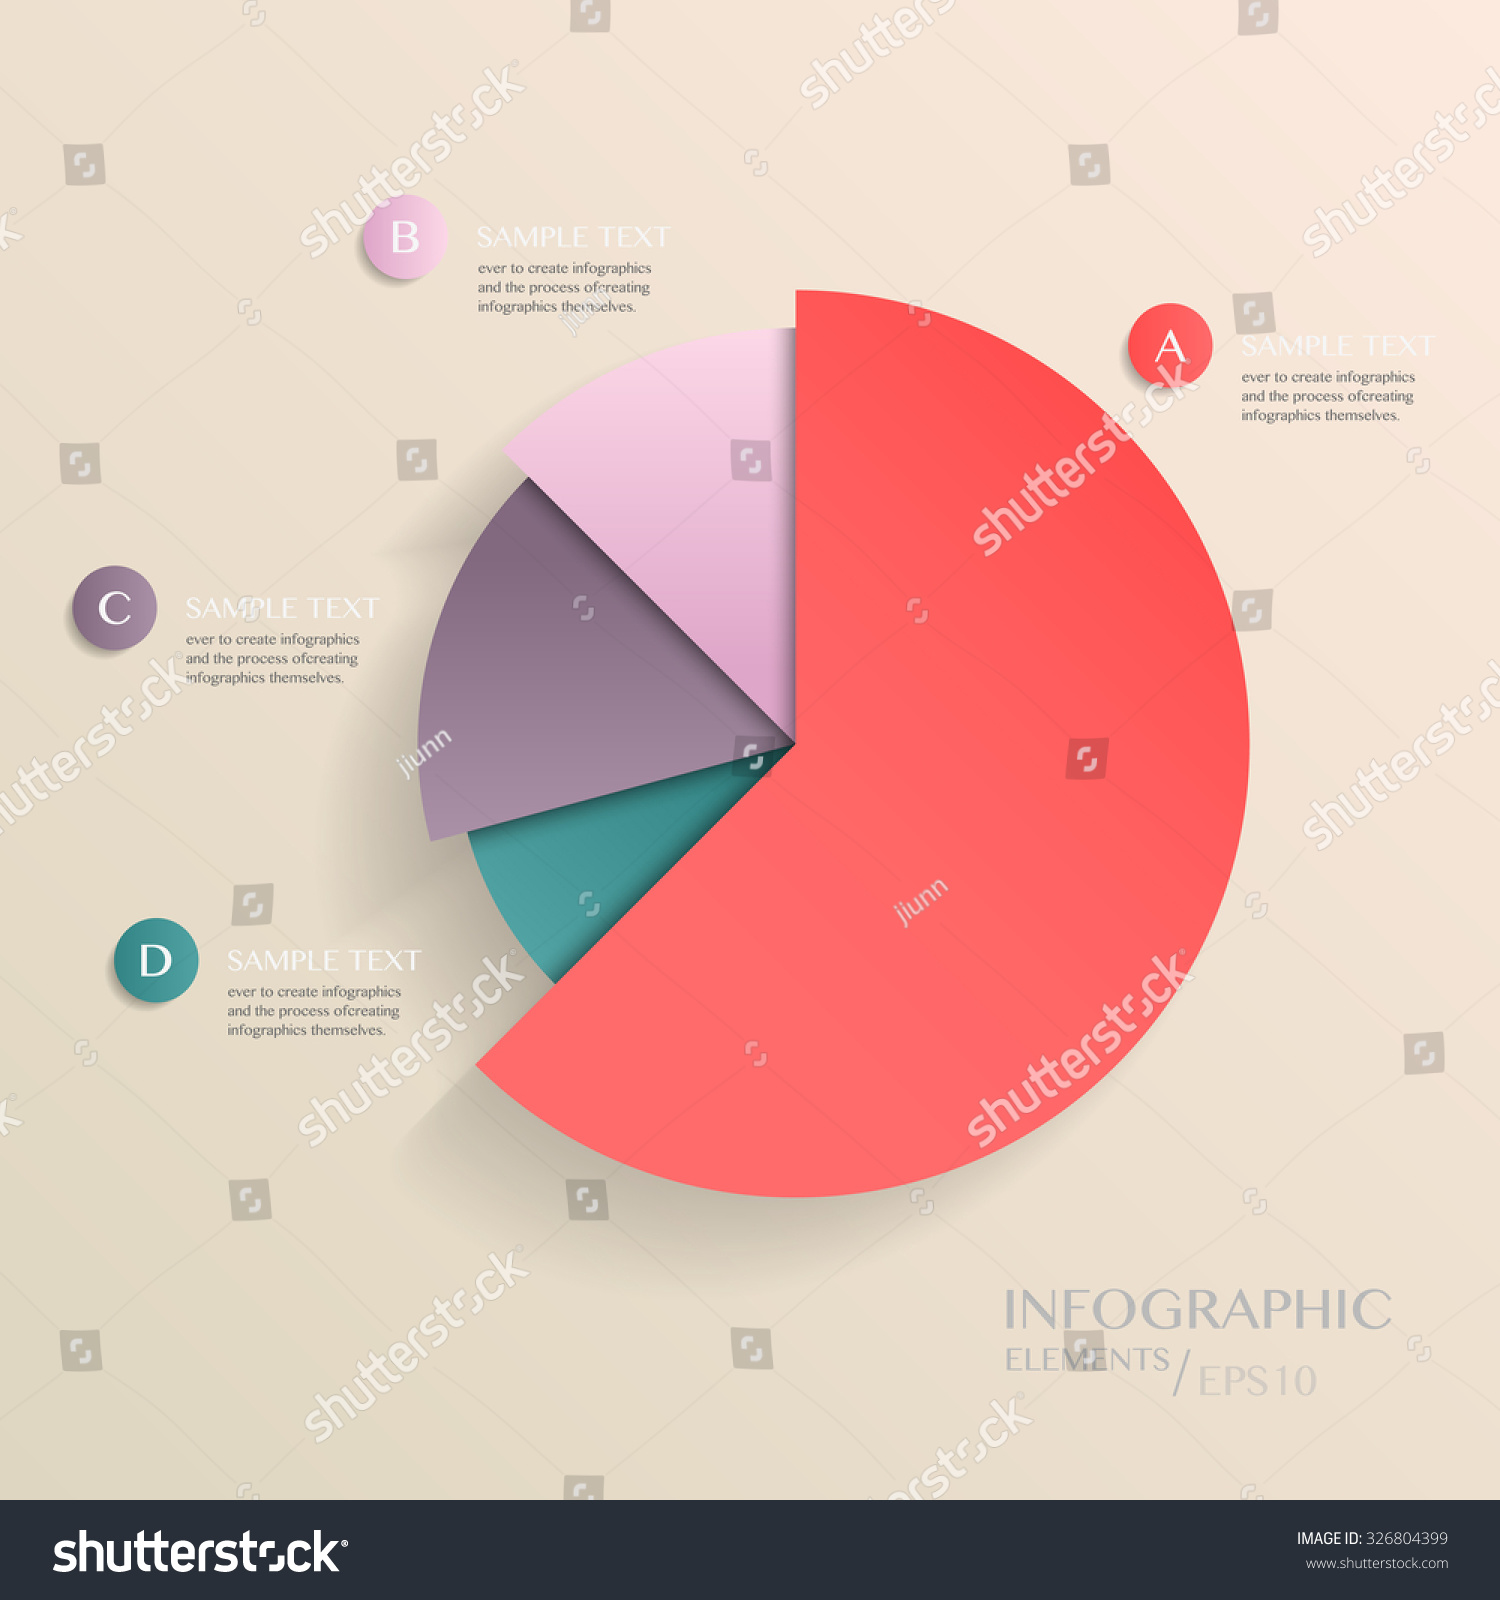 Modern vector abstract pie chart infographic stock vector 326804399 modern vector abstract pie chart infographic elementsn be used for workflow layout diagram nvjuhfo Choice Image